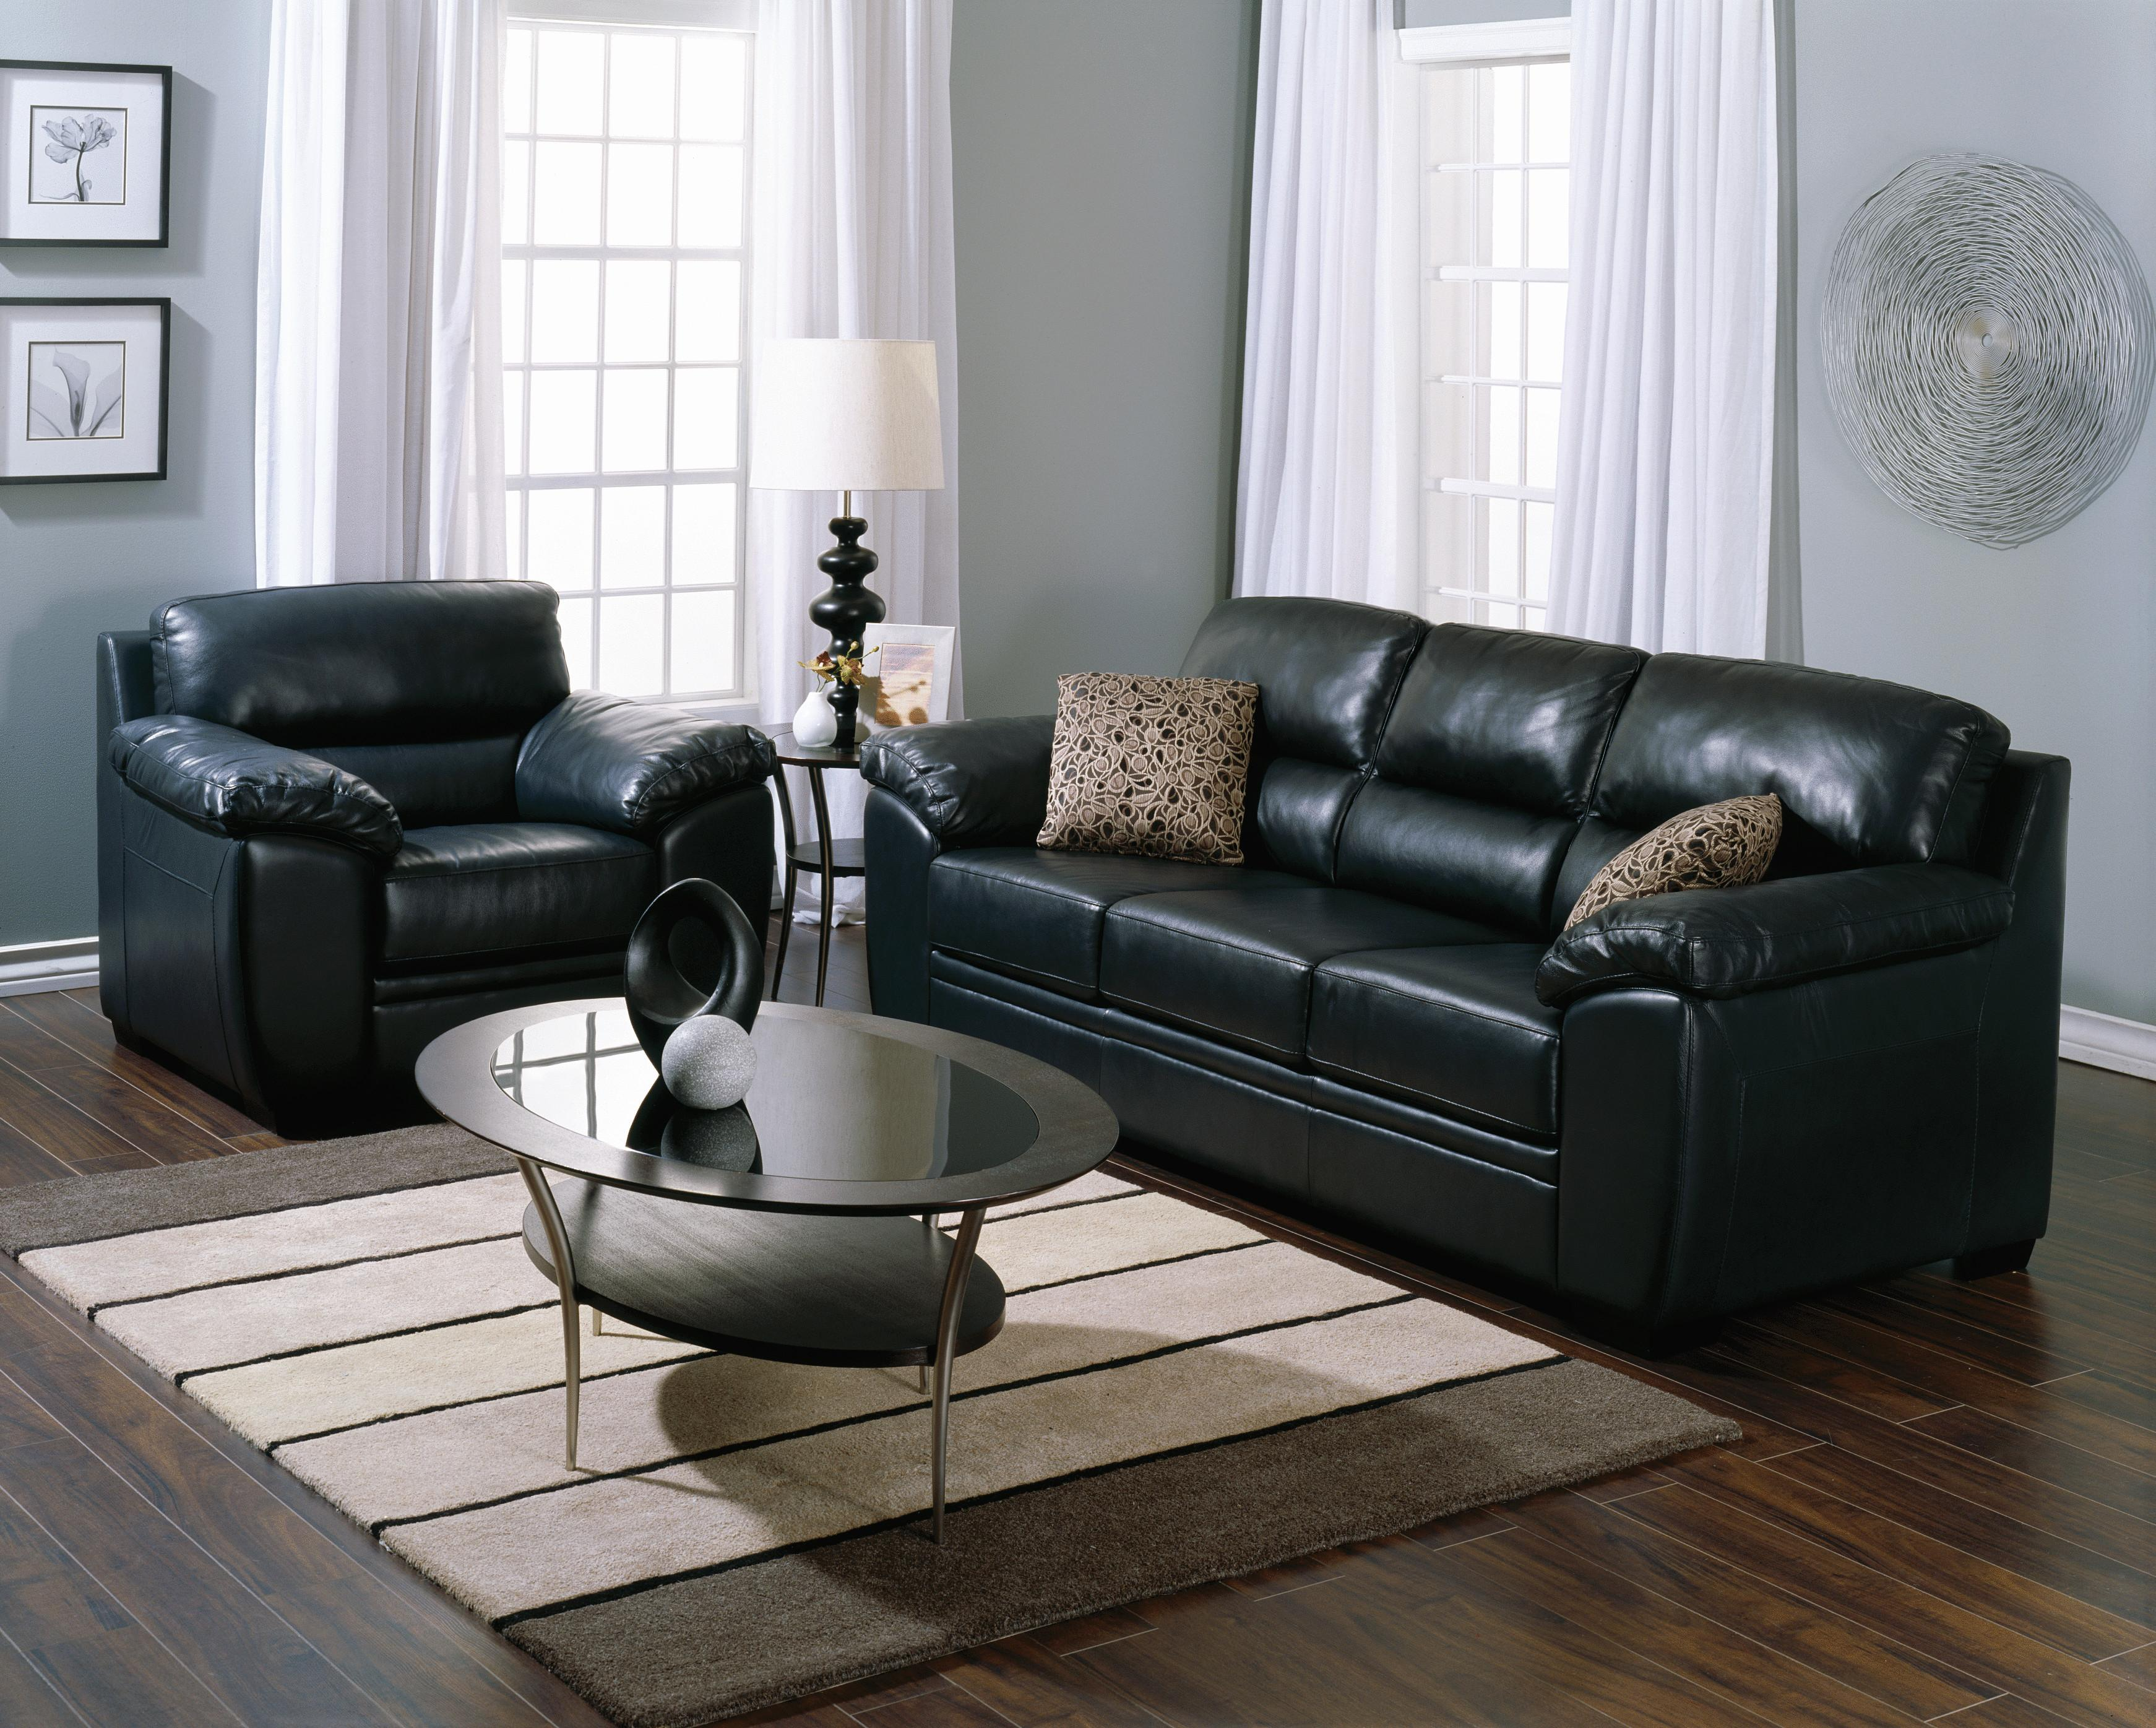 palliser bedroom furniture parts. palliser cypress contemporary sectional sofa with chaise - wayside furniture bedroom parts t